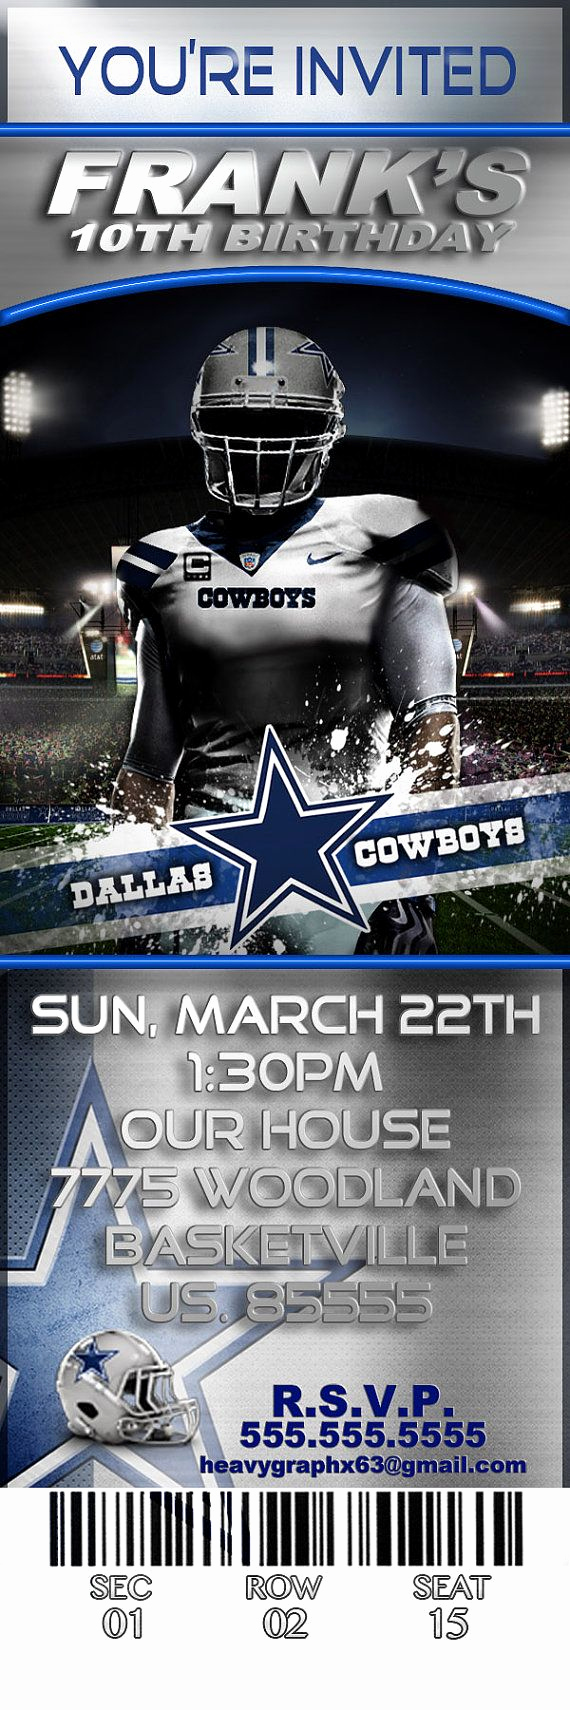 Dallas Cowboys Invitation Template Beautiful 25 Best Ideas About Cowboy Party Invitations On Pinterest